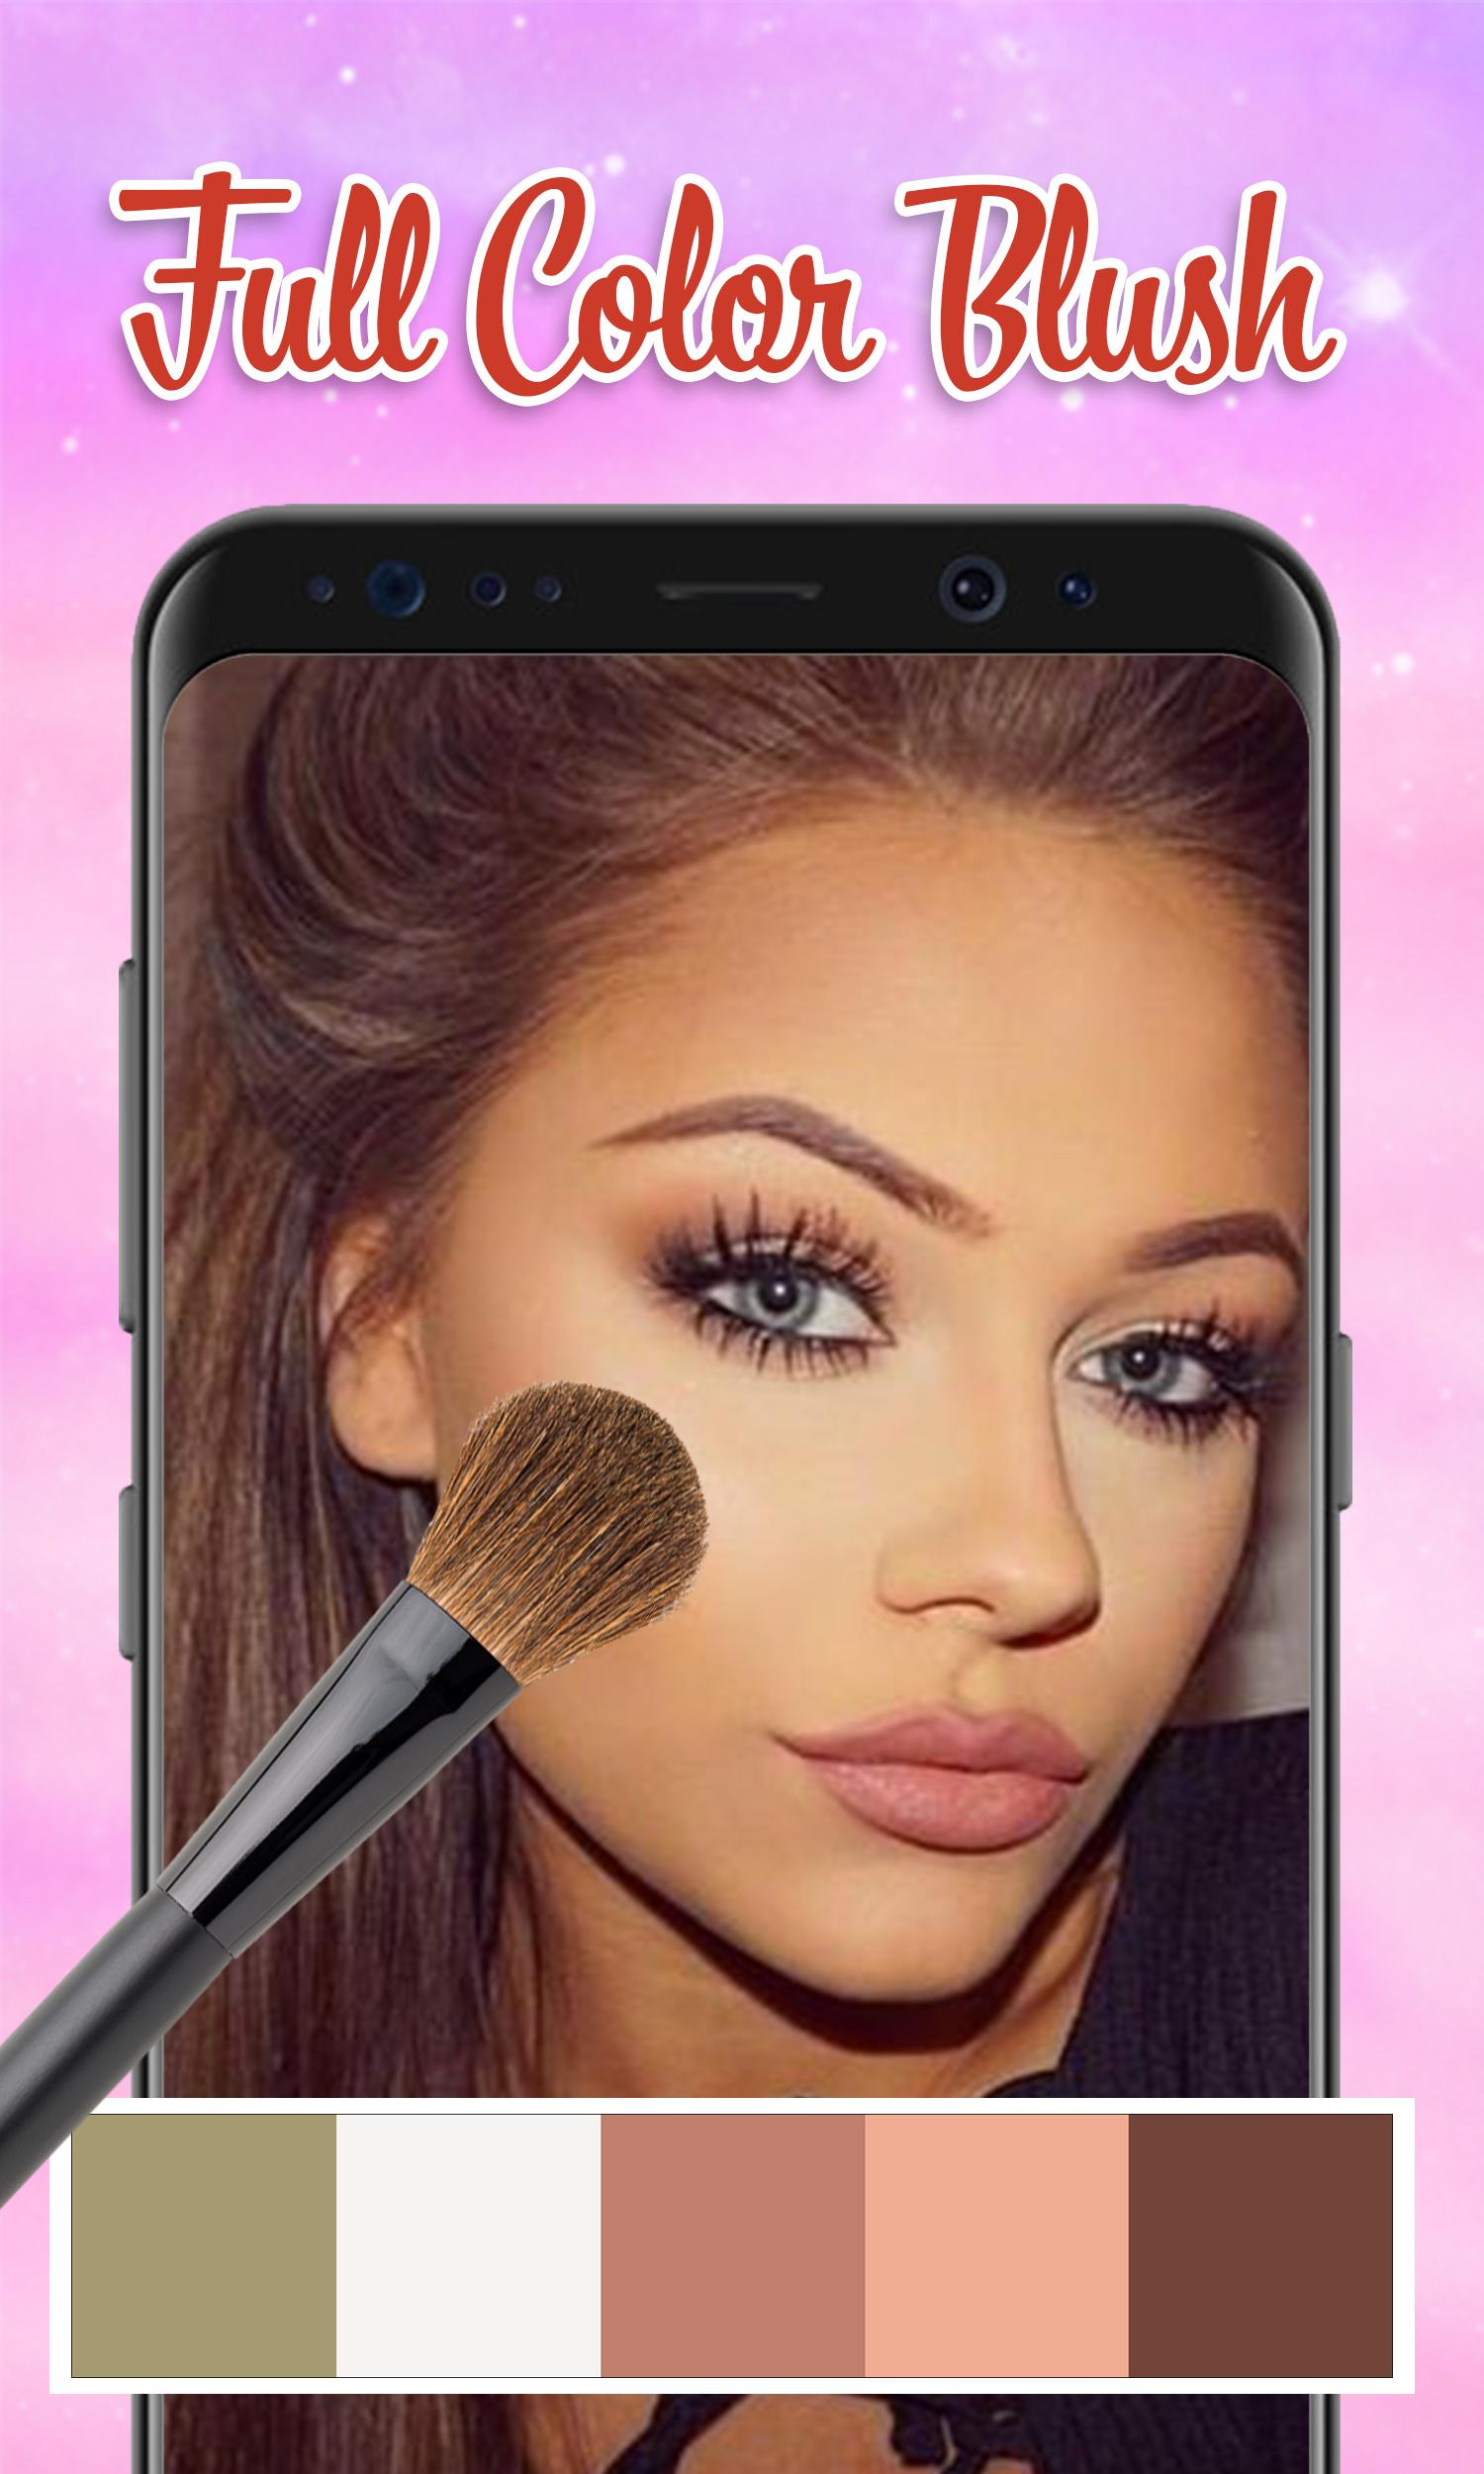 Makeup Photo Editor for Android - APK Download